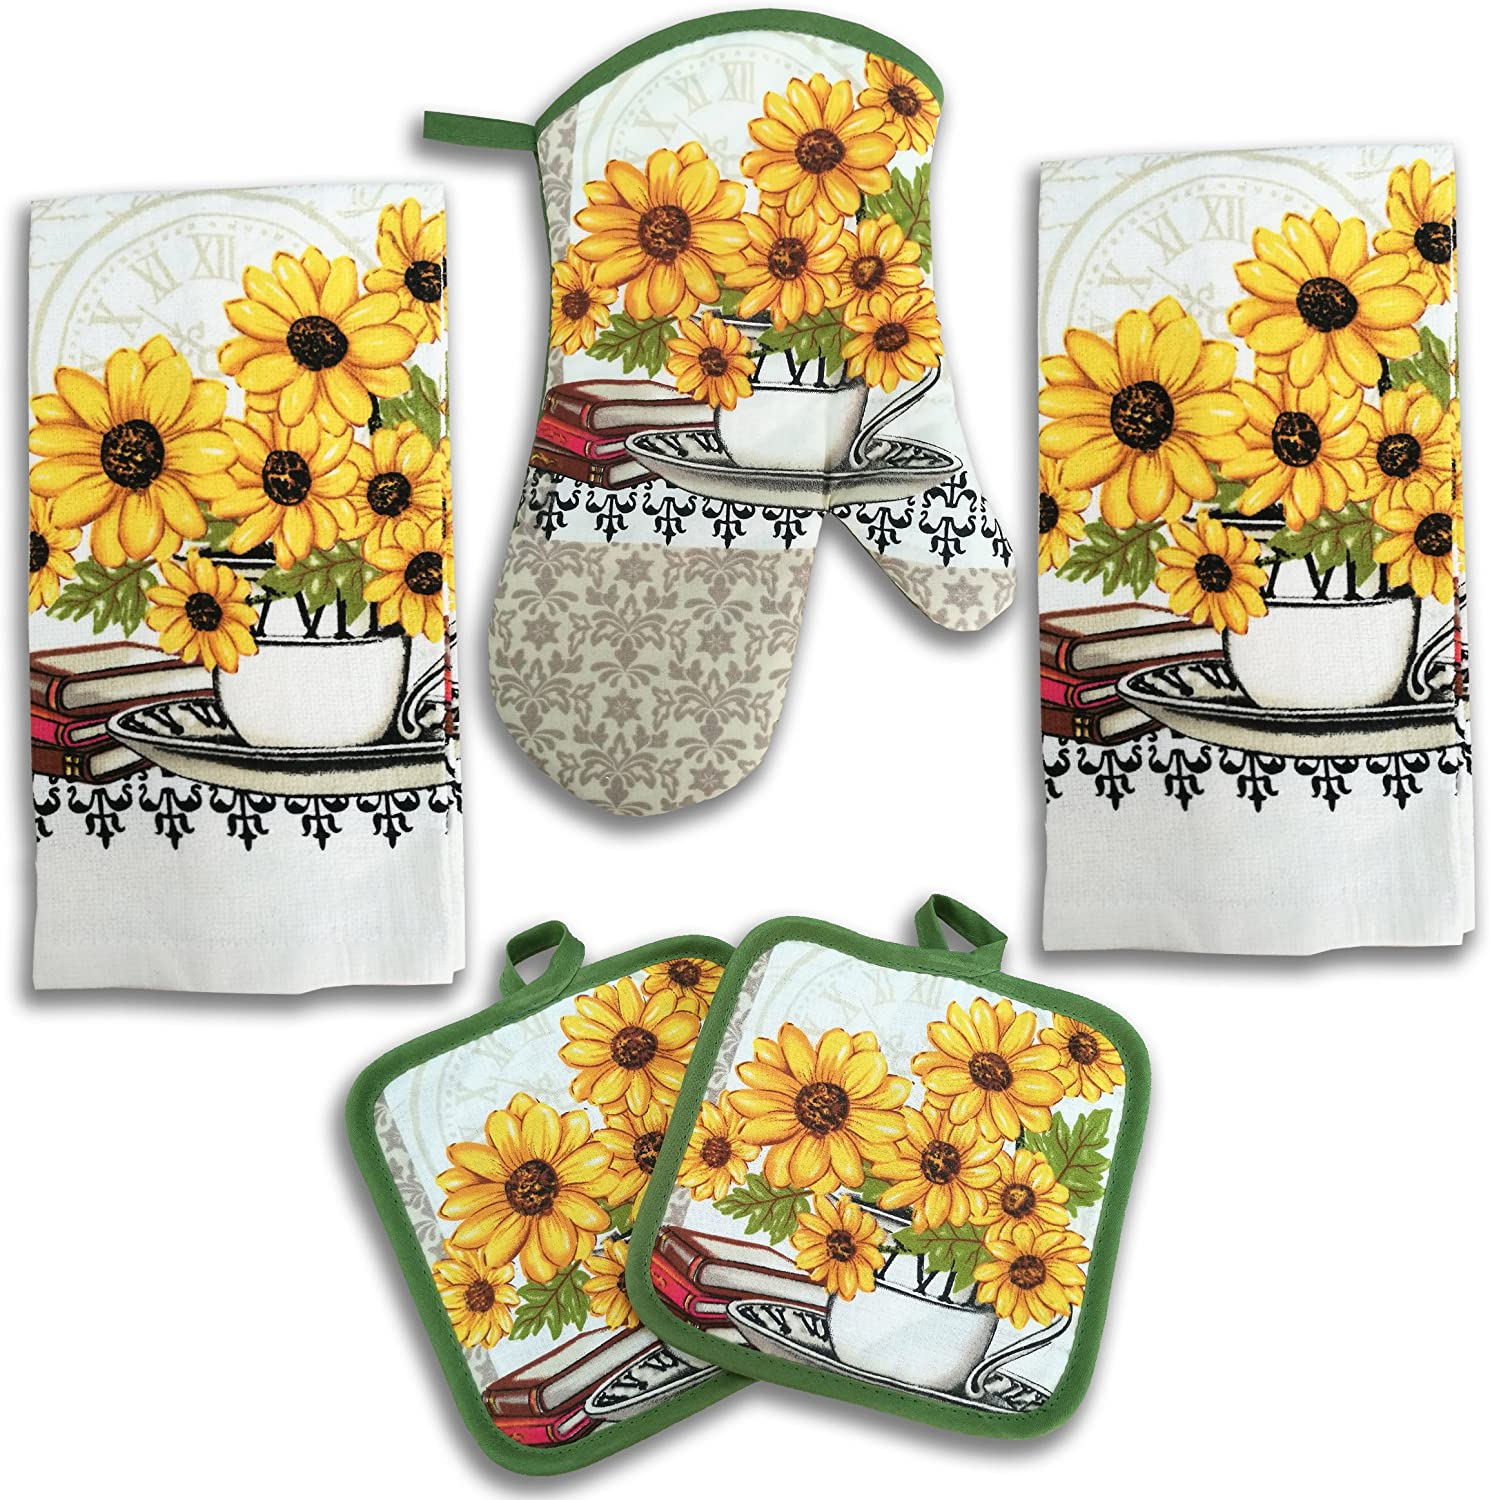 Amazon Com American Mills Yellow Sunflower Decor 5 Piece Printed Kitchen Linen Set Includes Towels Pot Holders Oven Mitt Home